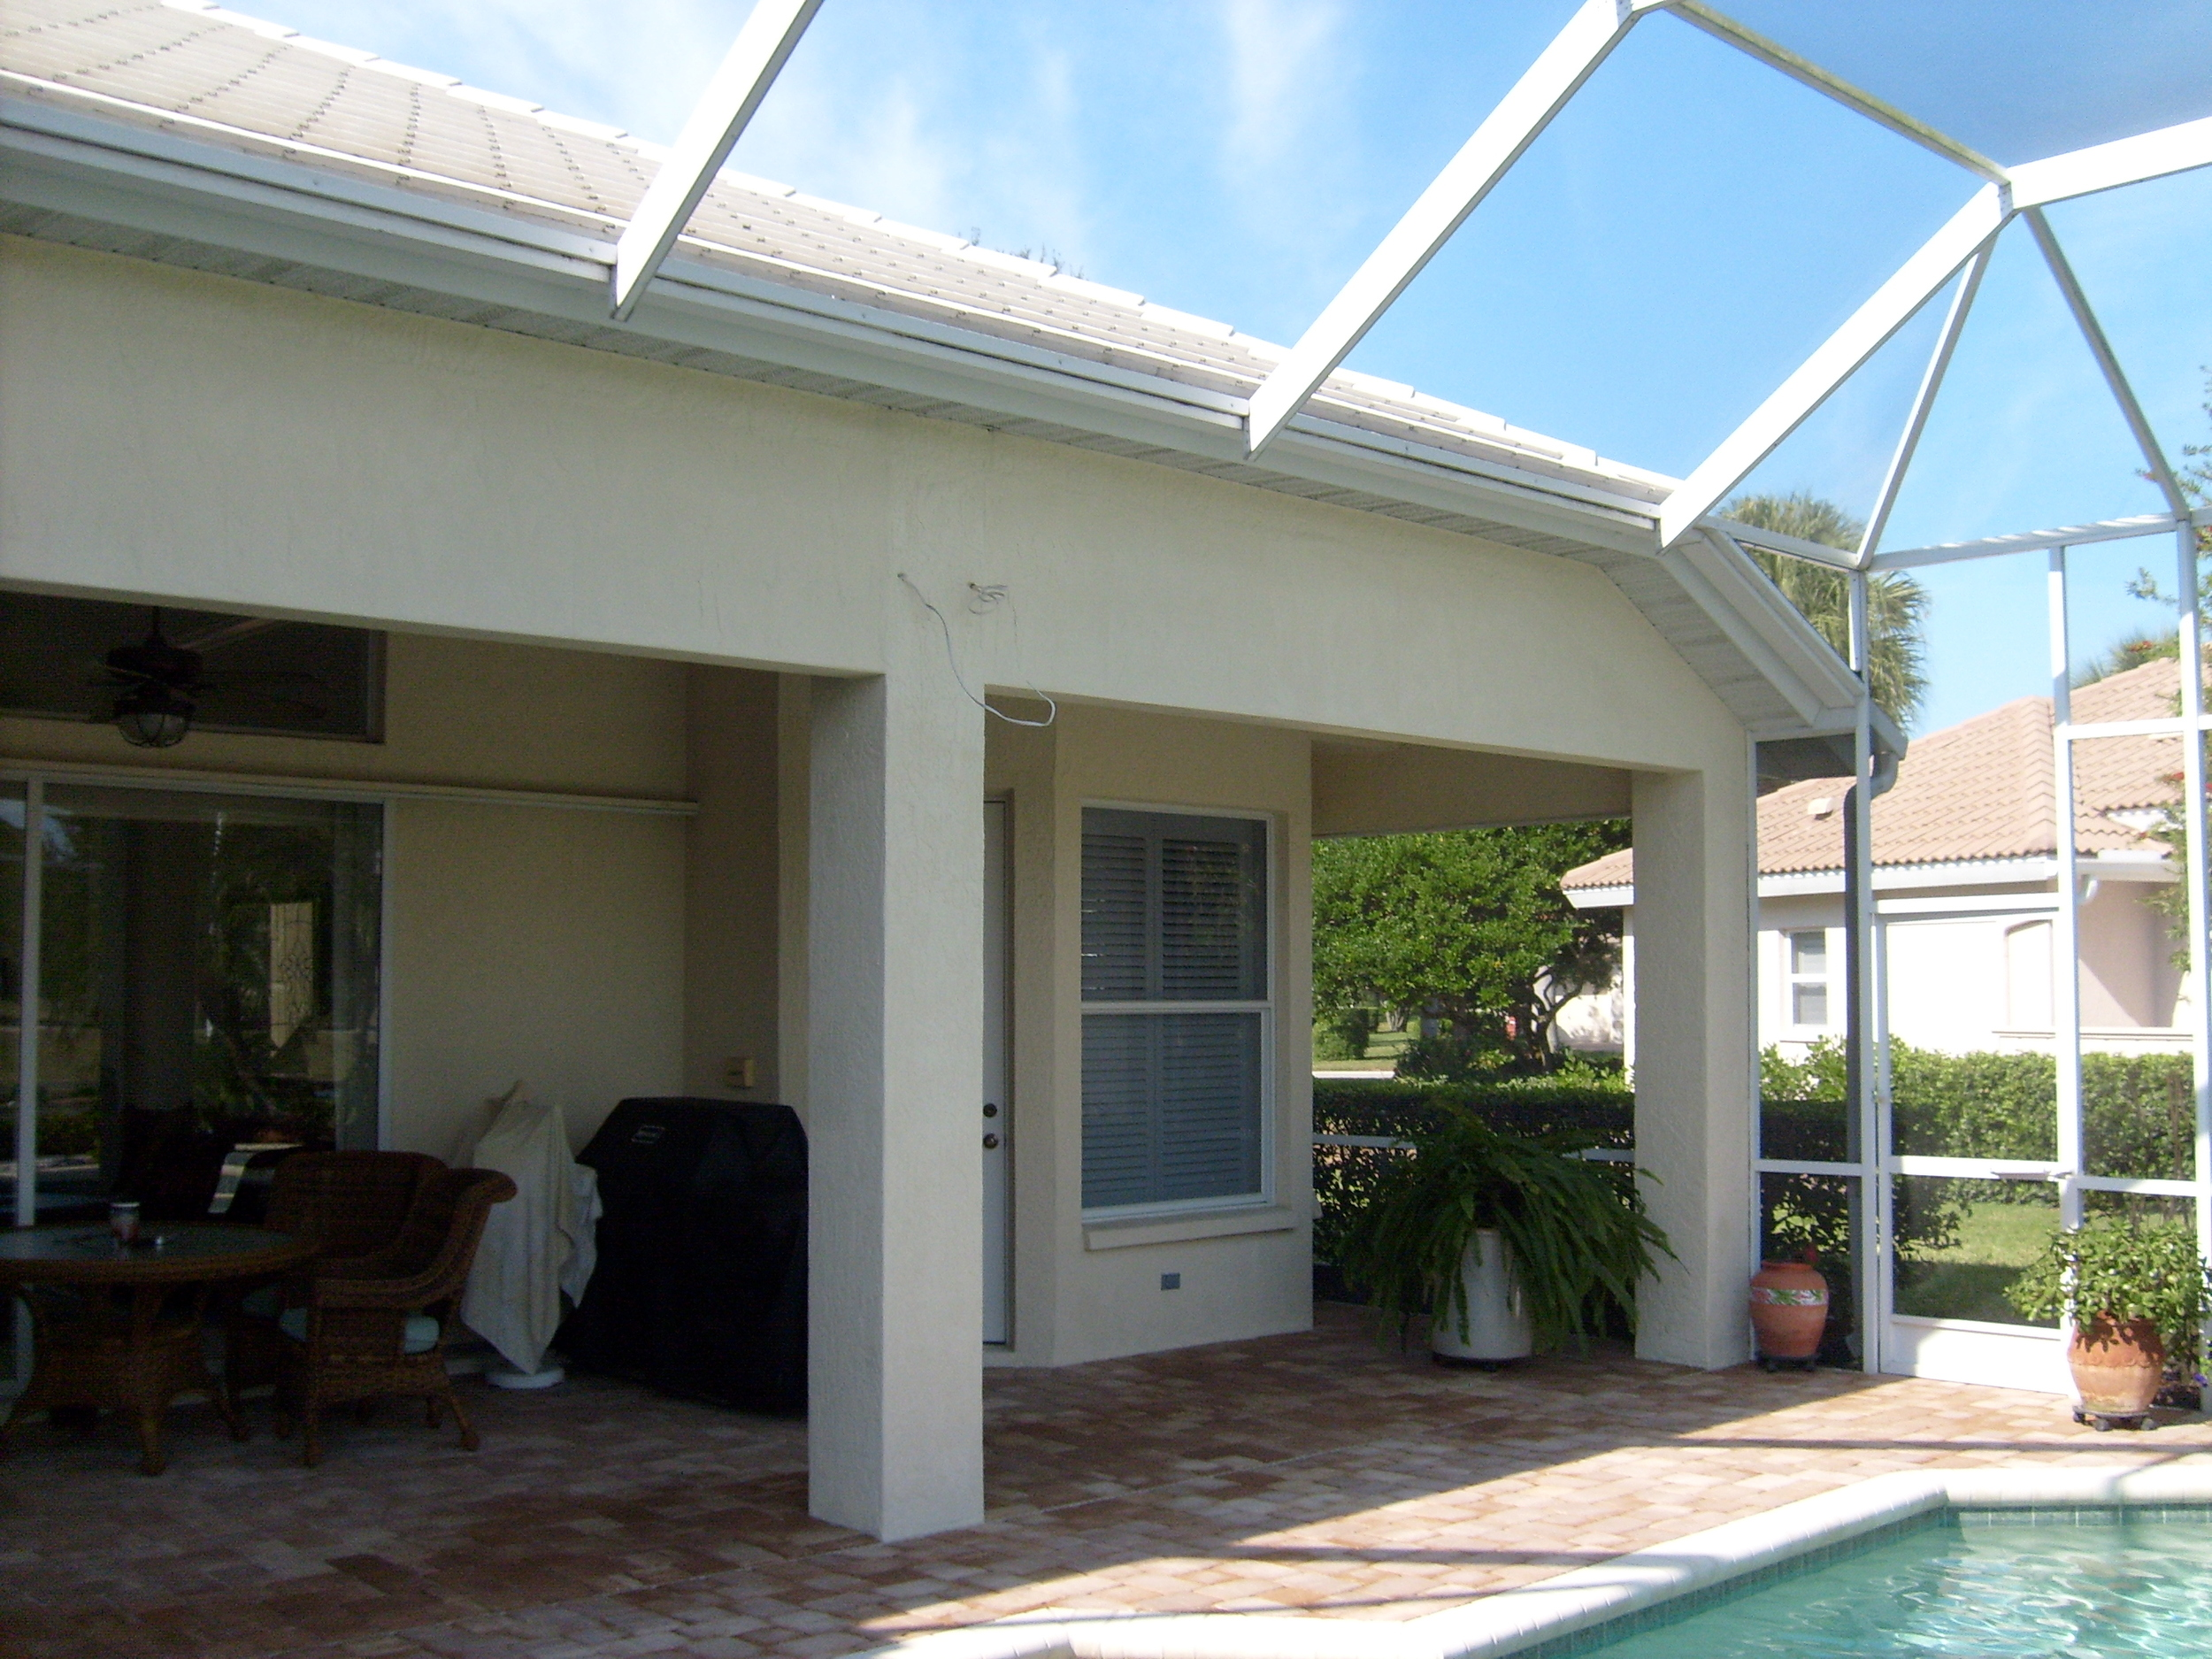 64 Finish Stucco and Paint